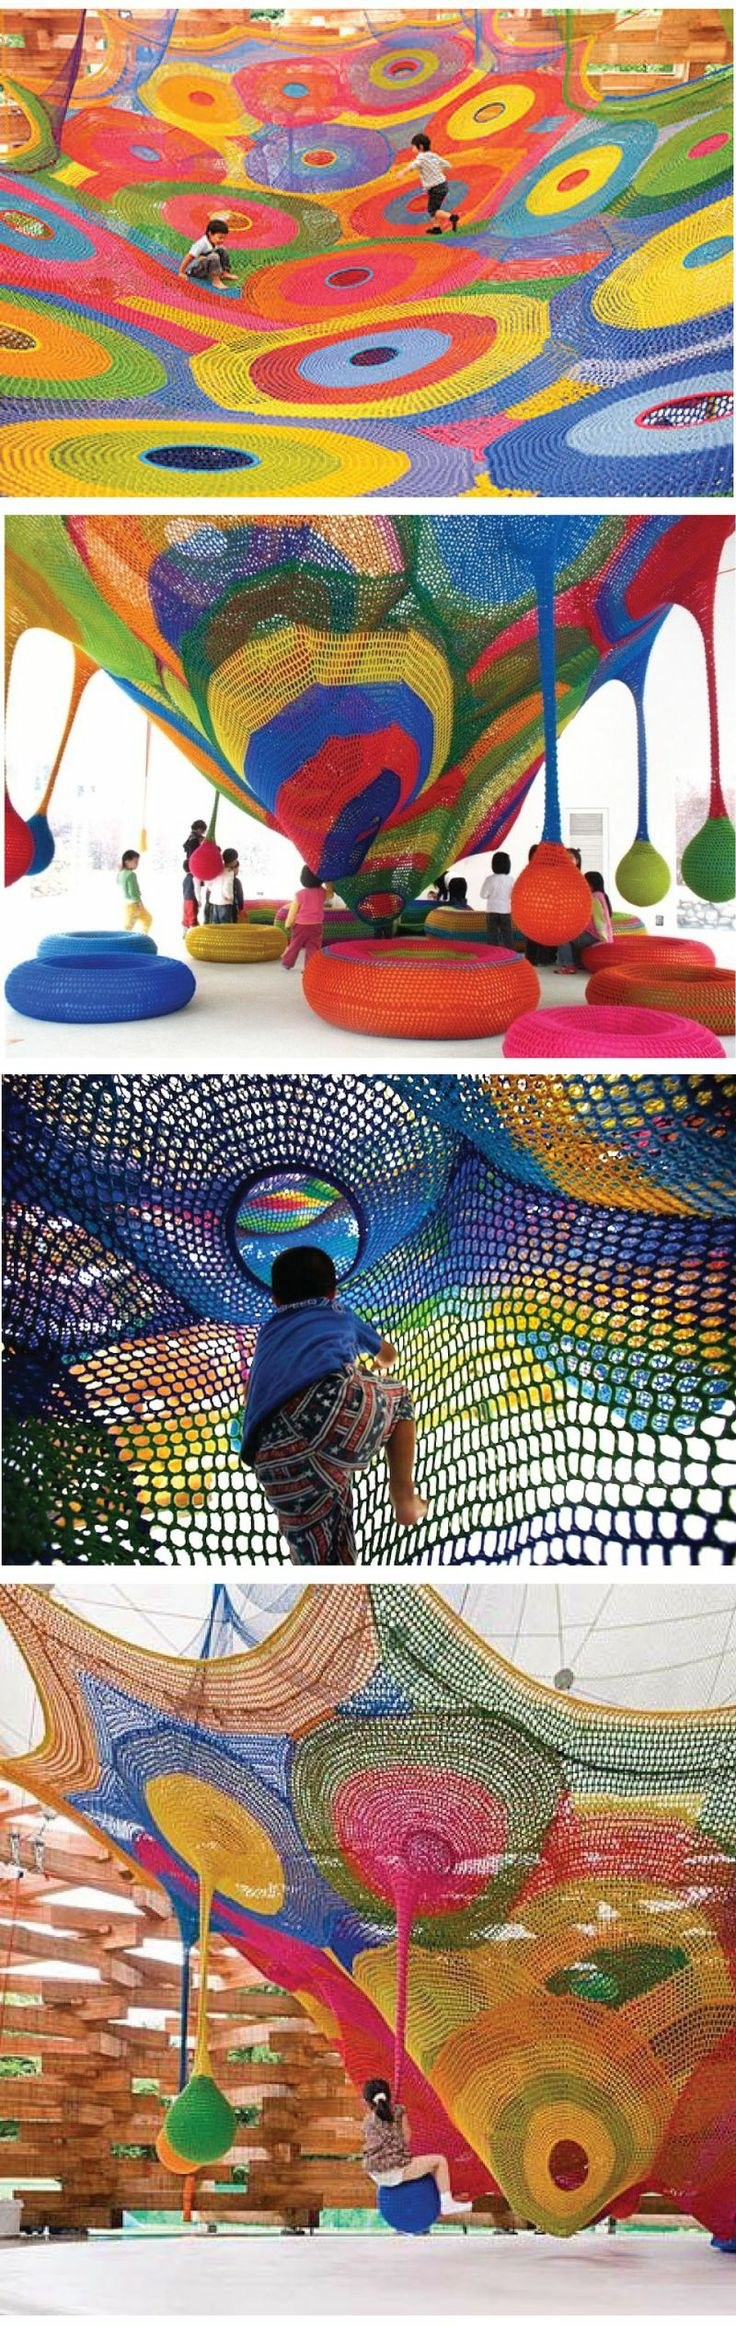 play environment created by Japanese fiber artist, Toshiko Horiuchi MacAdam.